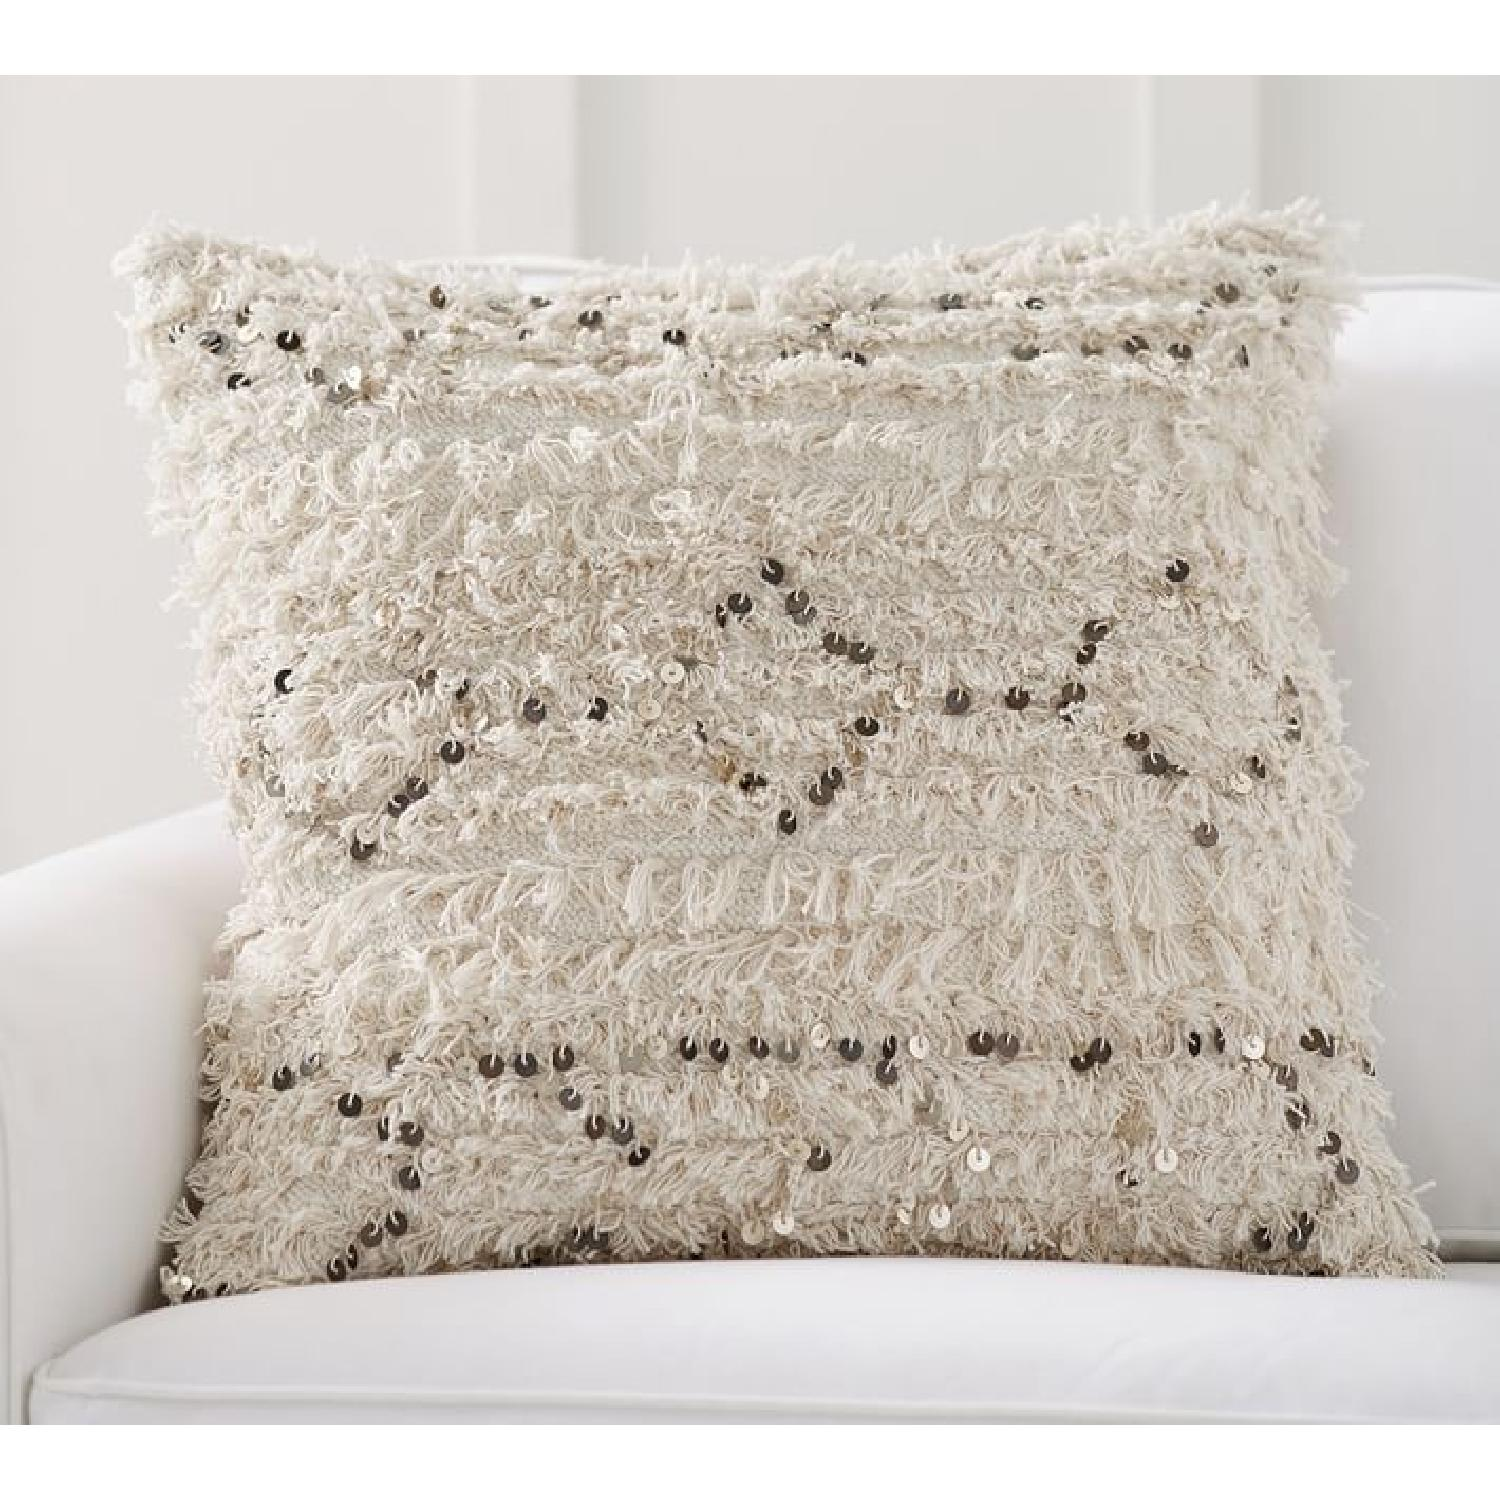 Pottery Barn Moroccan Wedding Pillow Covers w/ Sham Inserts - image-5